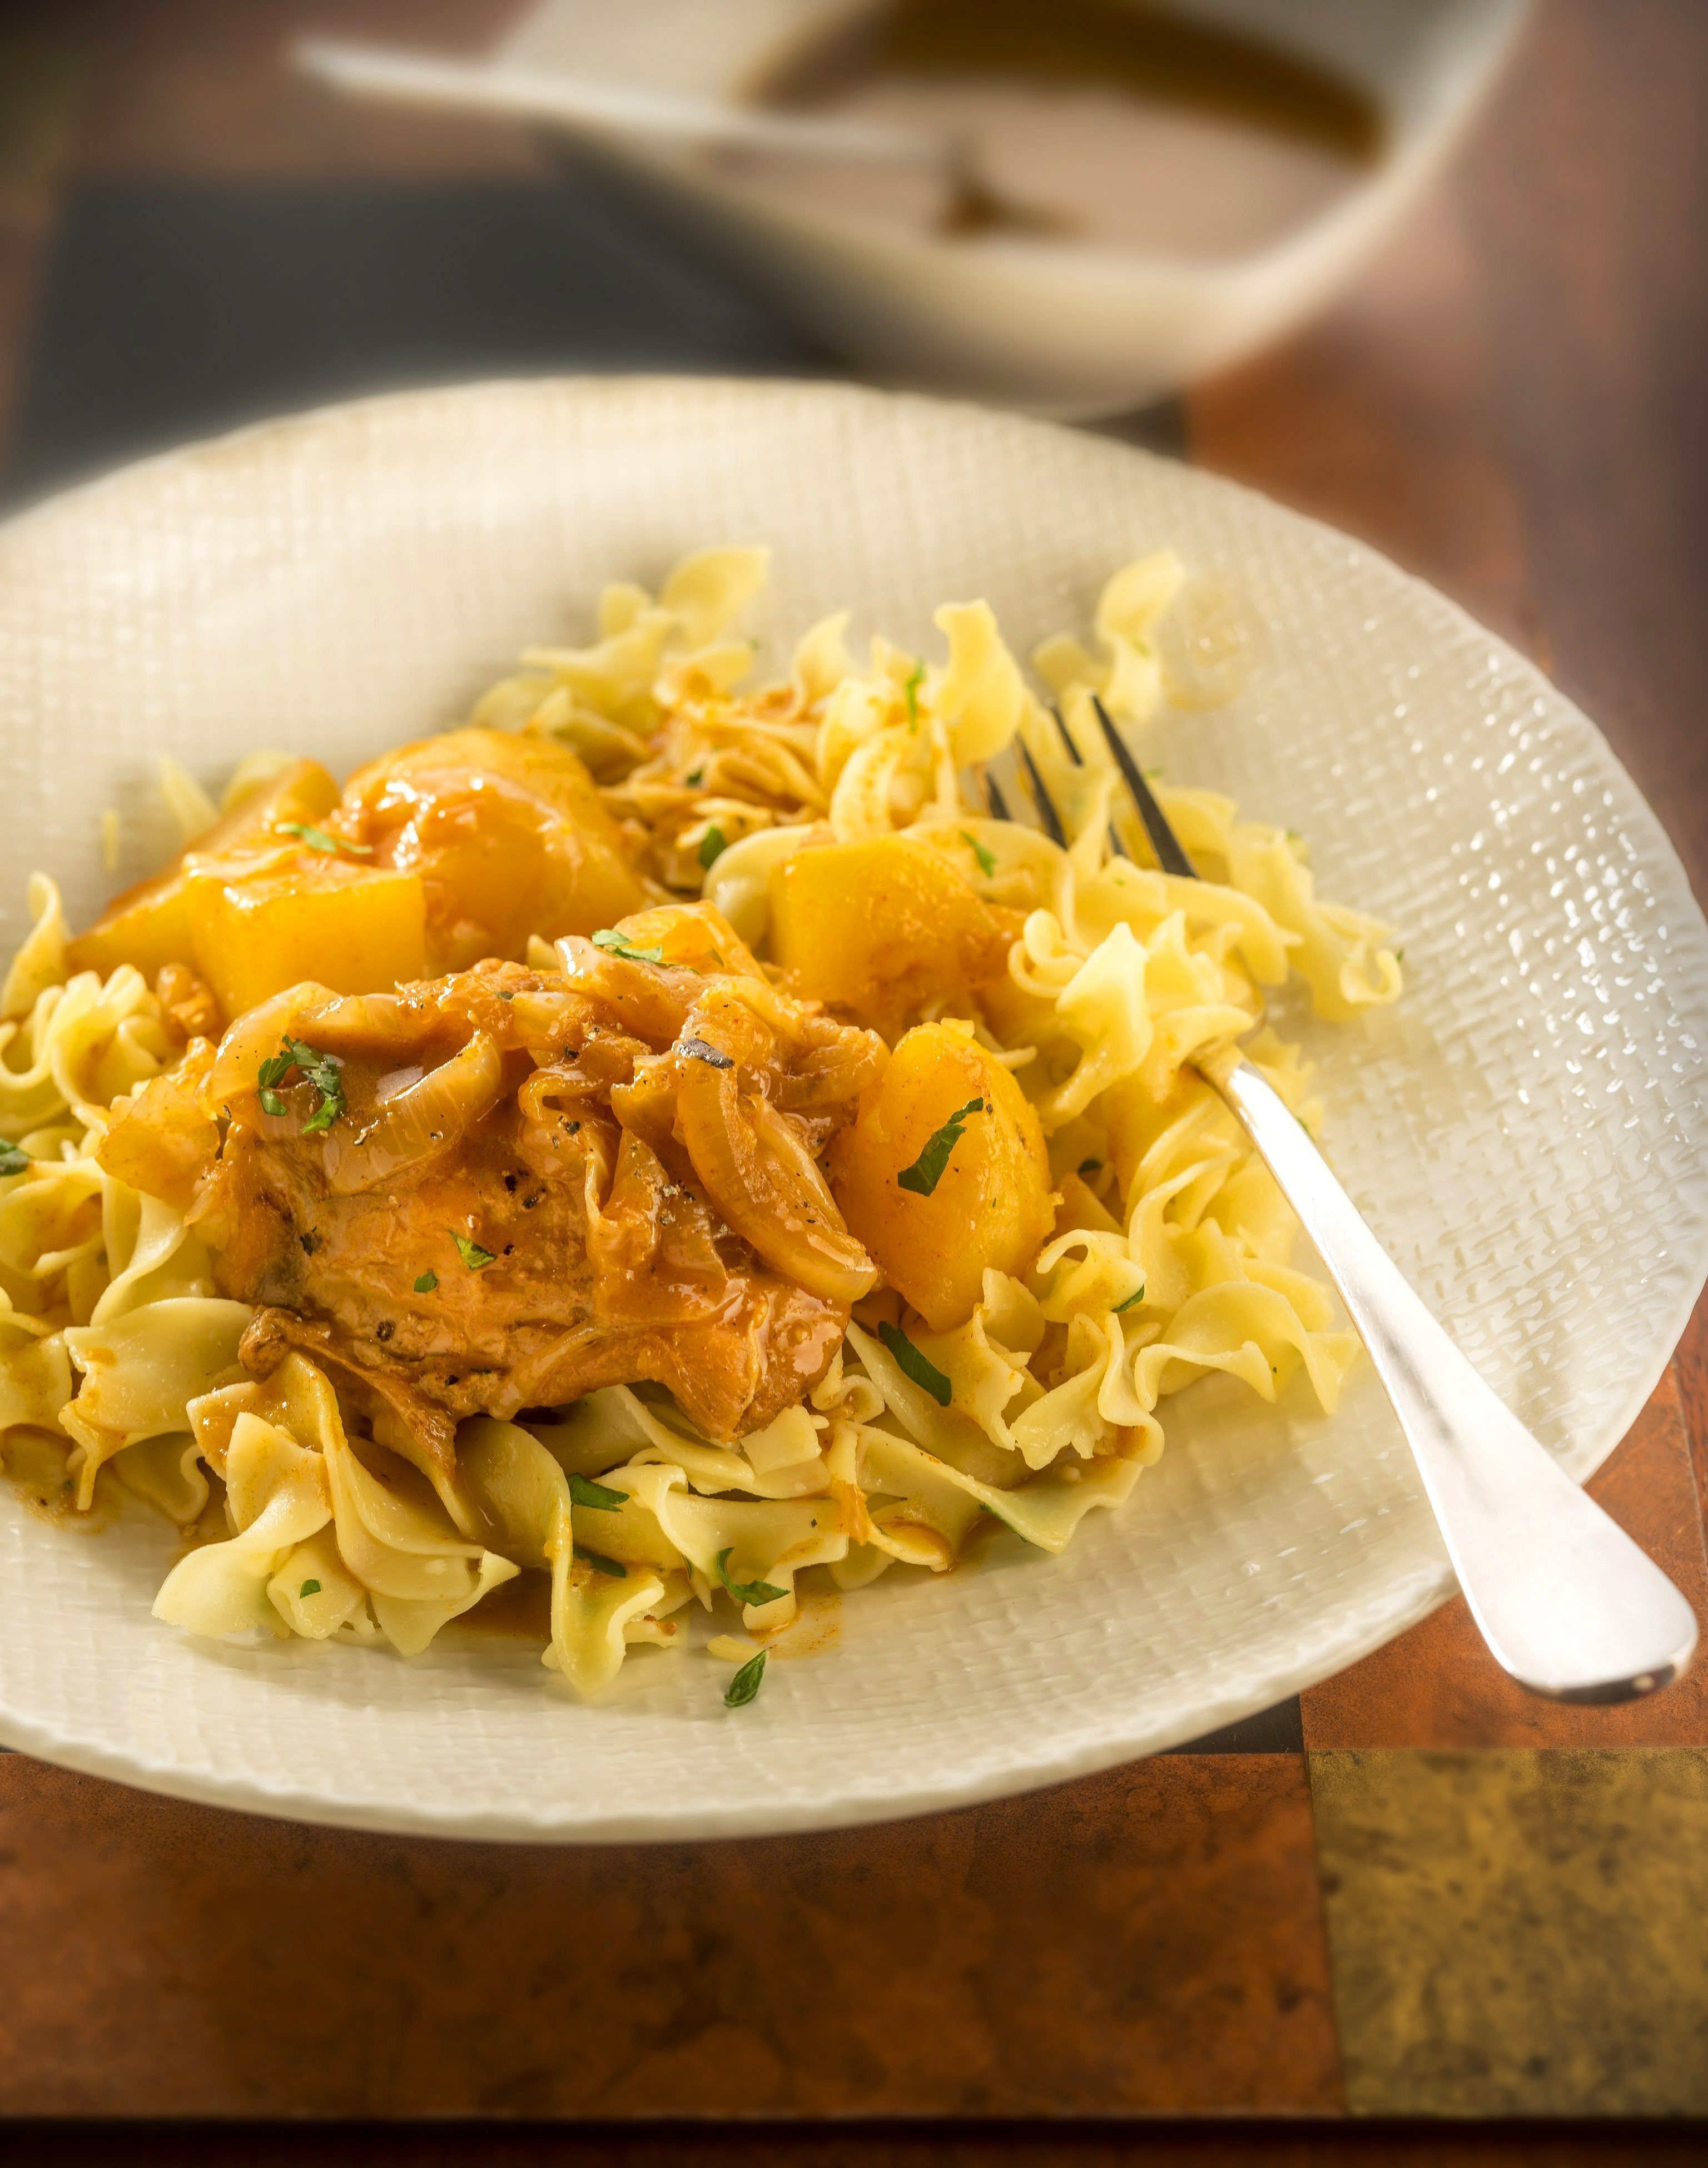 Hungarian paprika is a key ingredient in chicken goulash with potatoes, shown above with egg noodles.